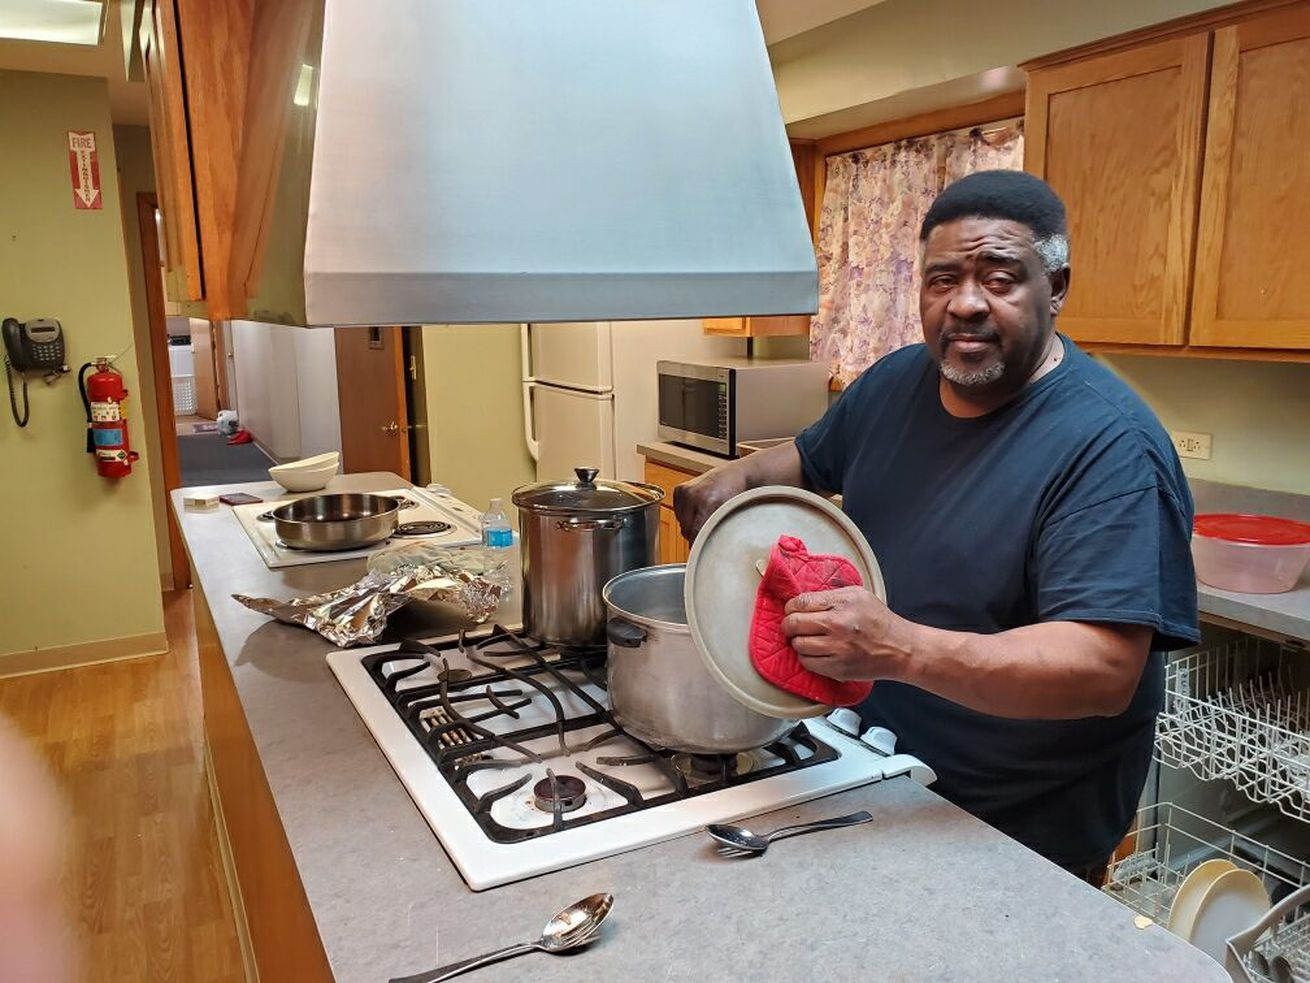 Forget 24/7, it's now 24/30 — or longer — for some who take care of developmentally disabled: 'Basically, we are their family'